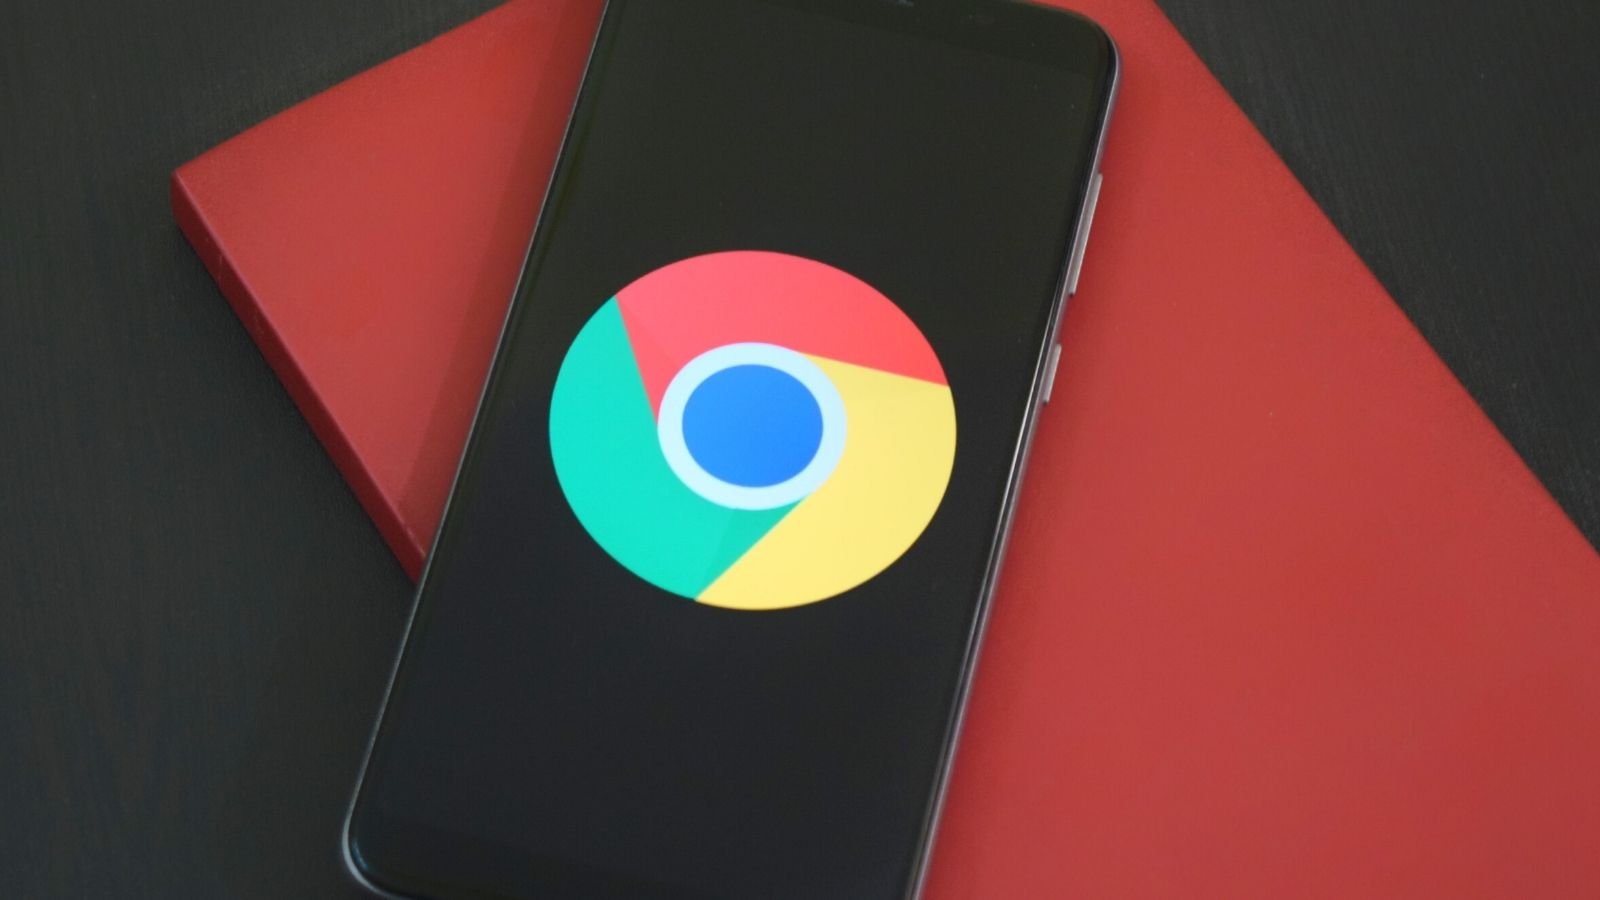 Google getting rid of paid extensions for Chrome - Memeburn